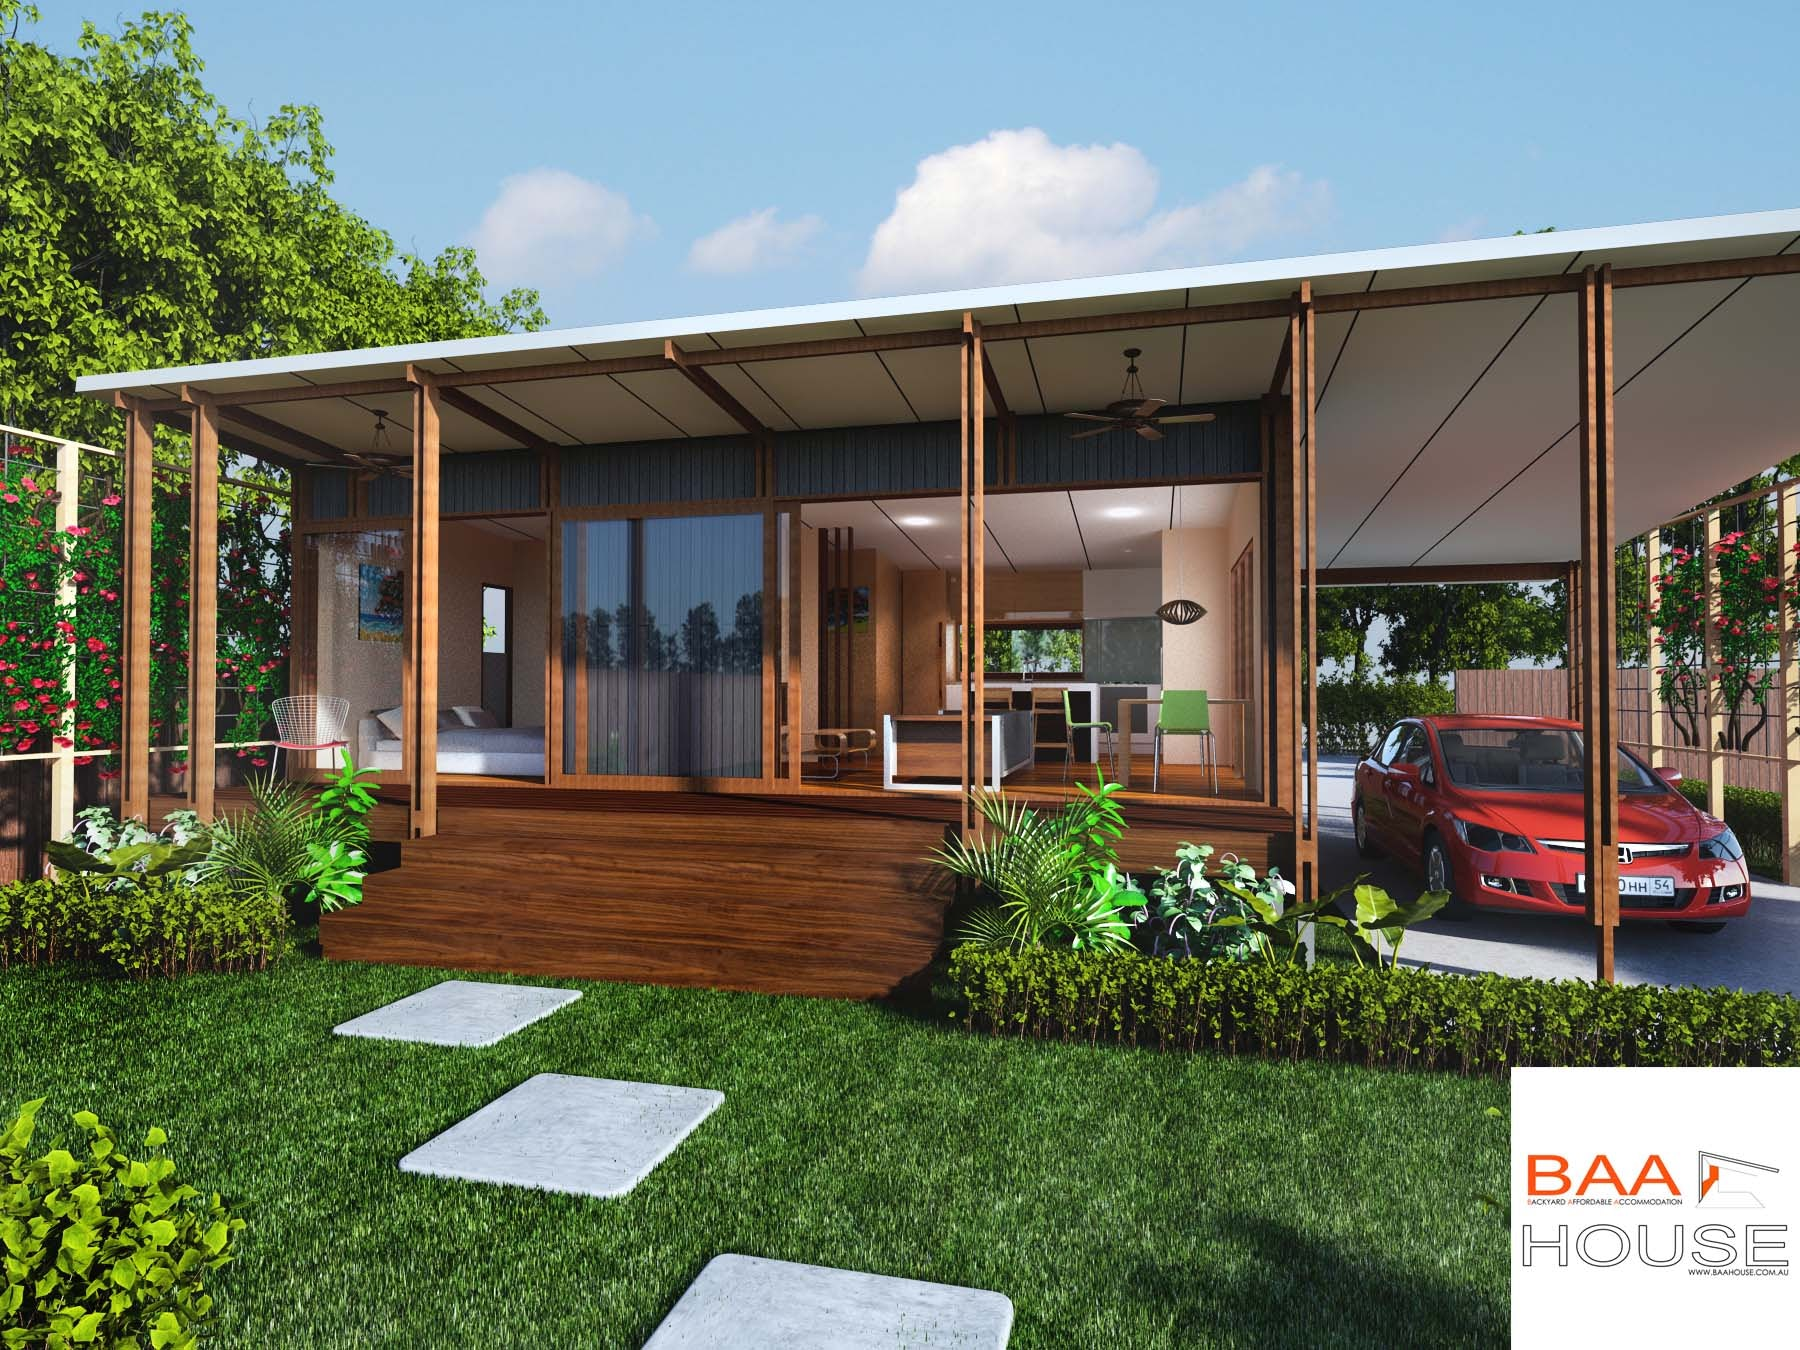 Home Design Ideas For Small Homes: Small Houses, Granny Flats